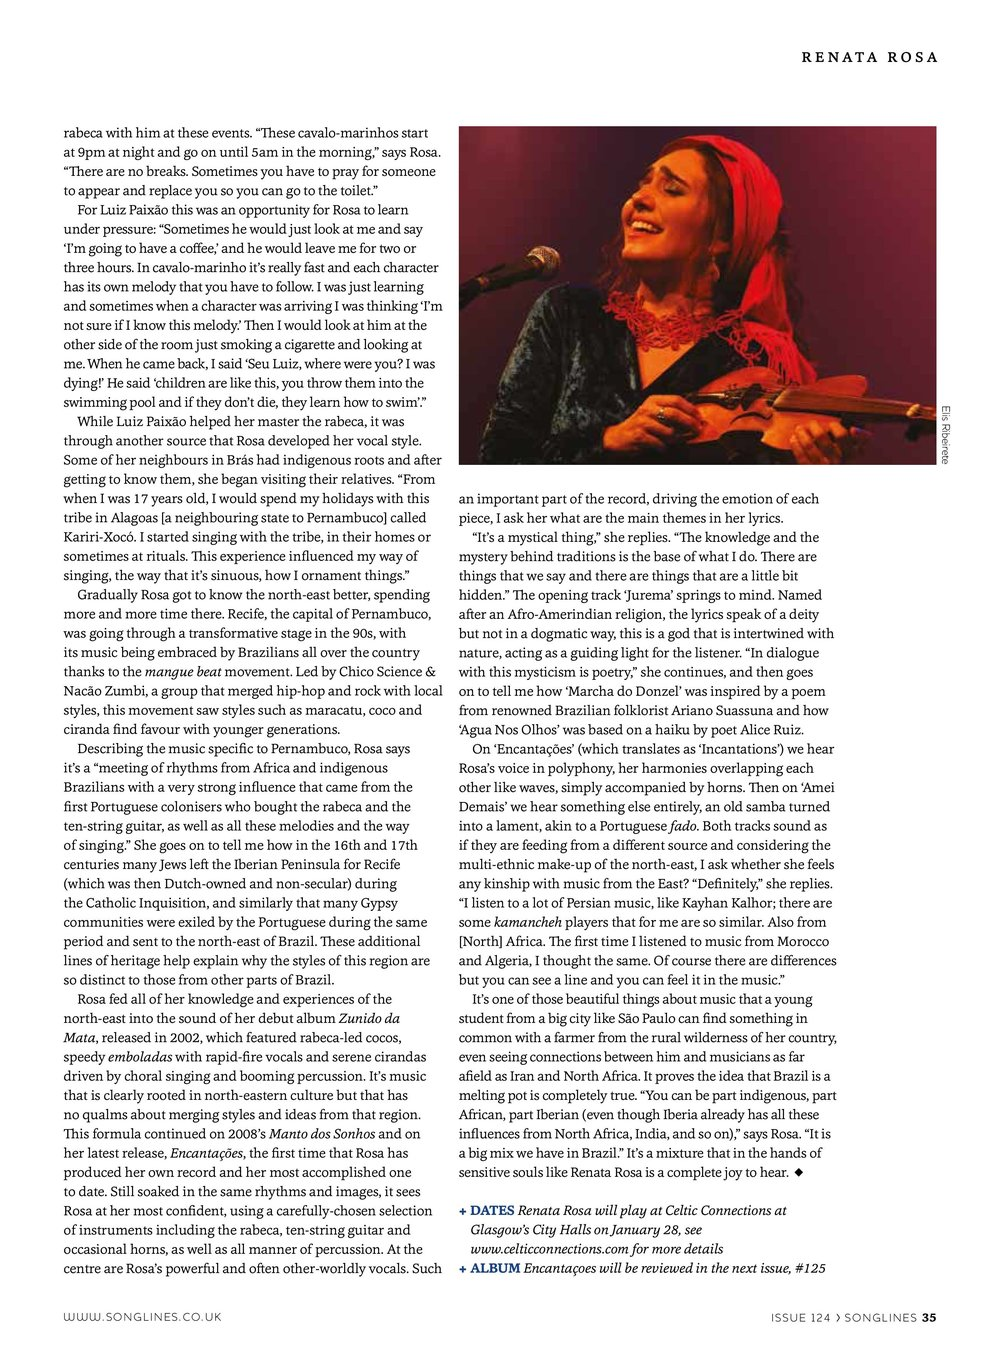 Songlines Magazine article, January 2017